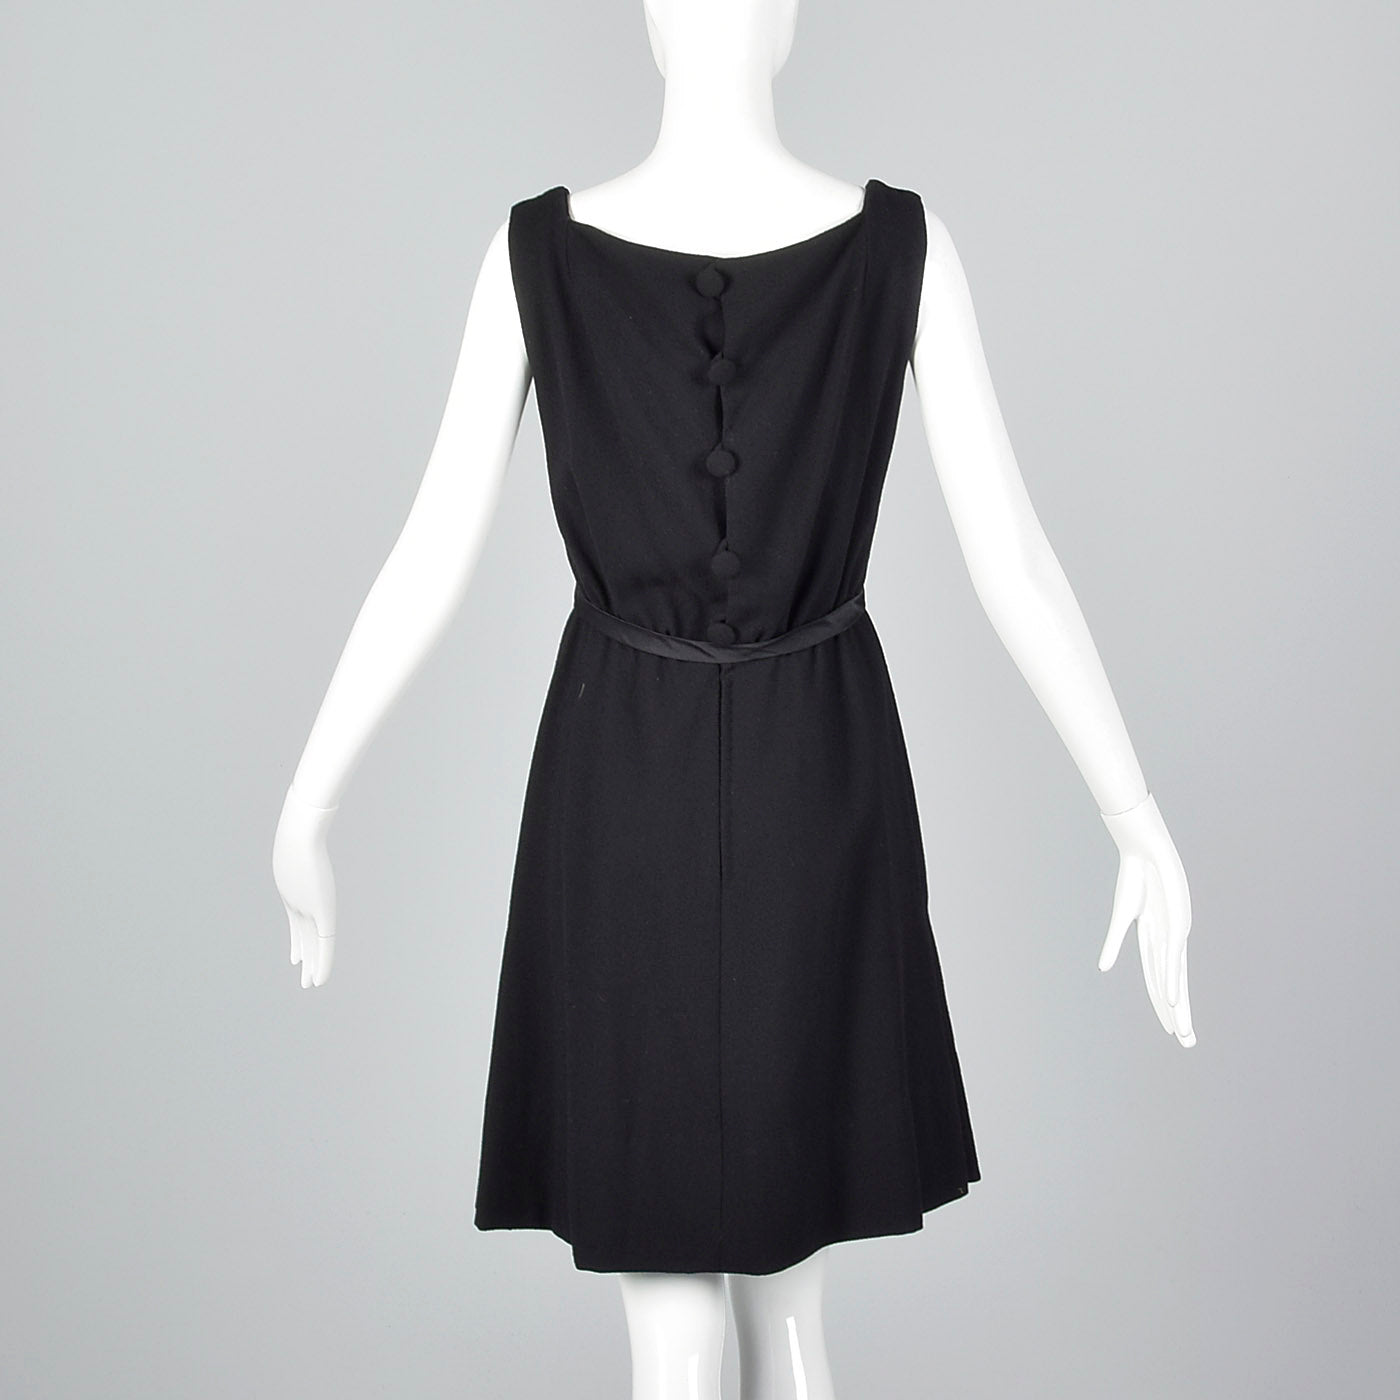 1950s Adele Simpson Black Dress with Button Up Back